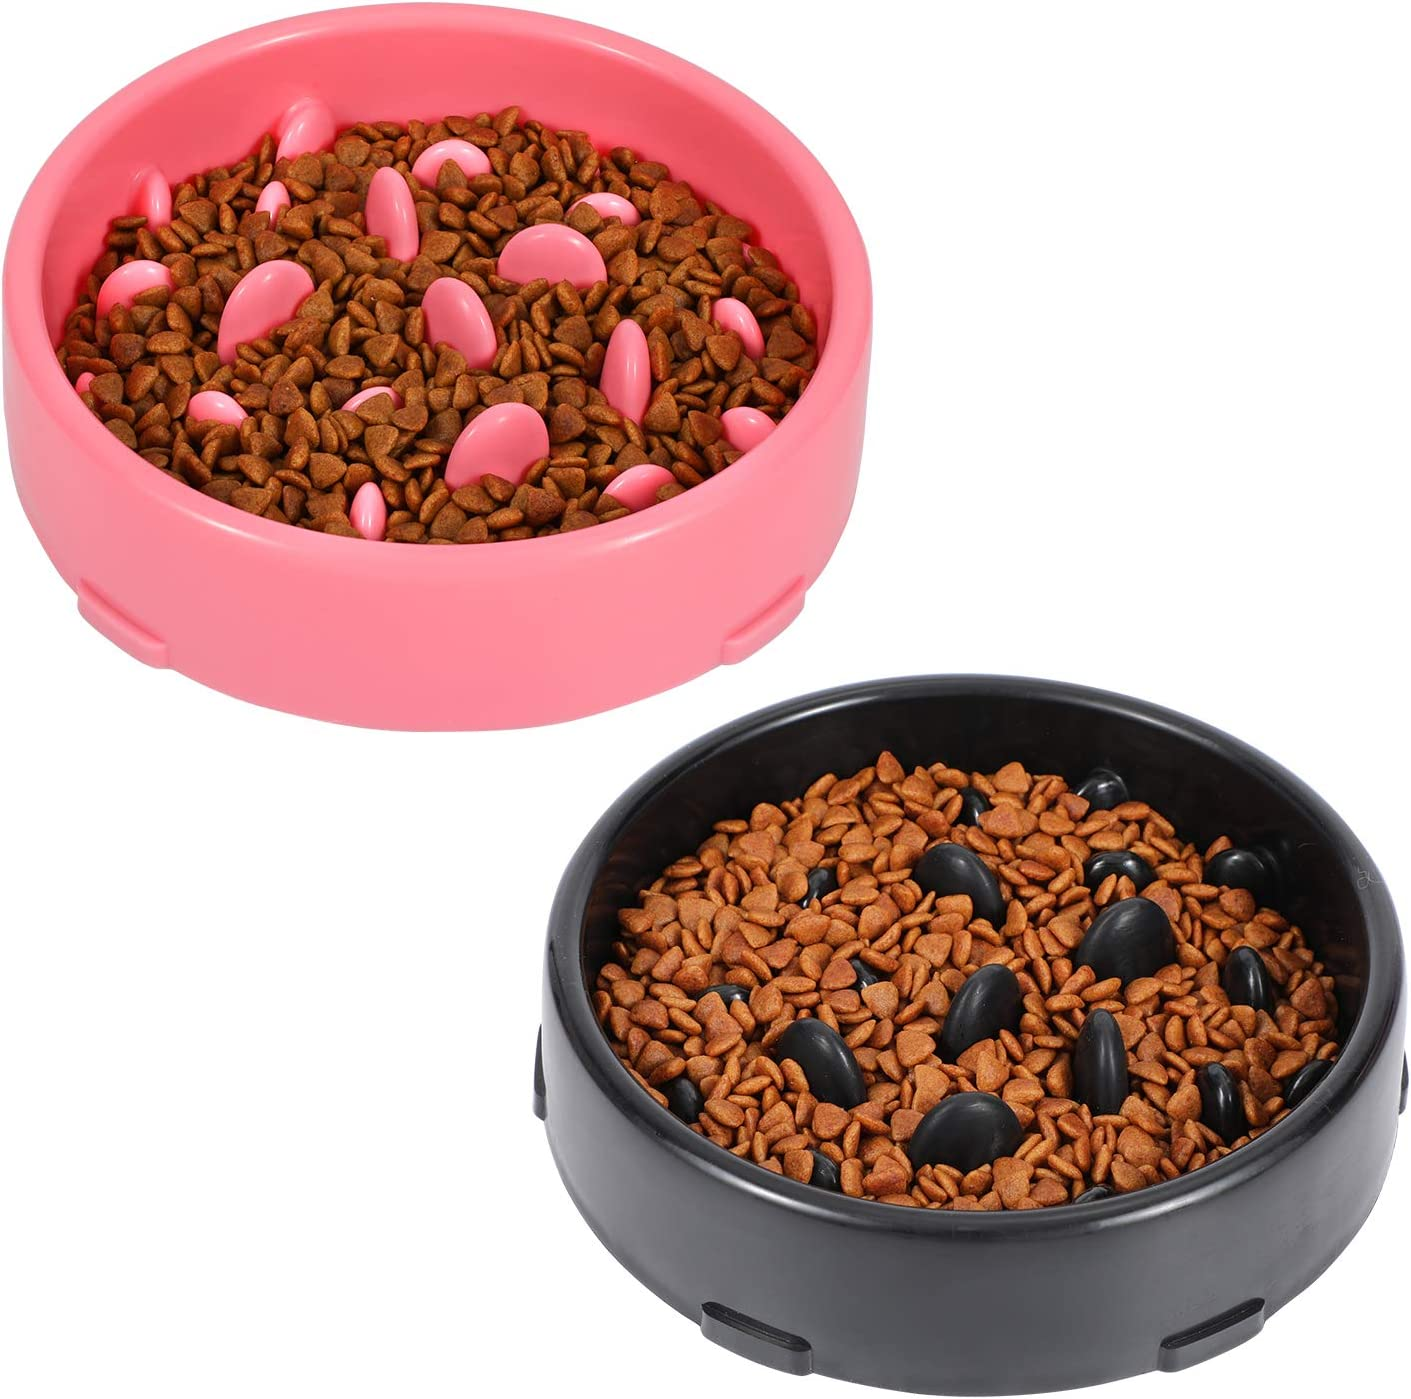 LEACOOLKEY Dog Bowl Slow Eating Feeder, No Chocking Anti-Gulp Slower Bowl, Stop Bloat for Dogs, Reduce Slip Puzzle Bowl for Small Puppy Medium Dogs, Eco-Friendly Non-Toxic Maze Bowl for Fast Eater